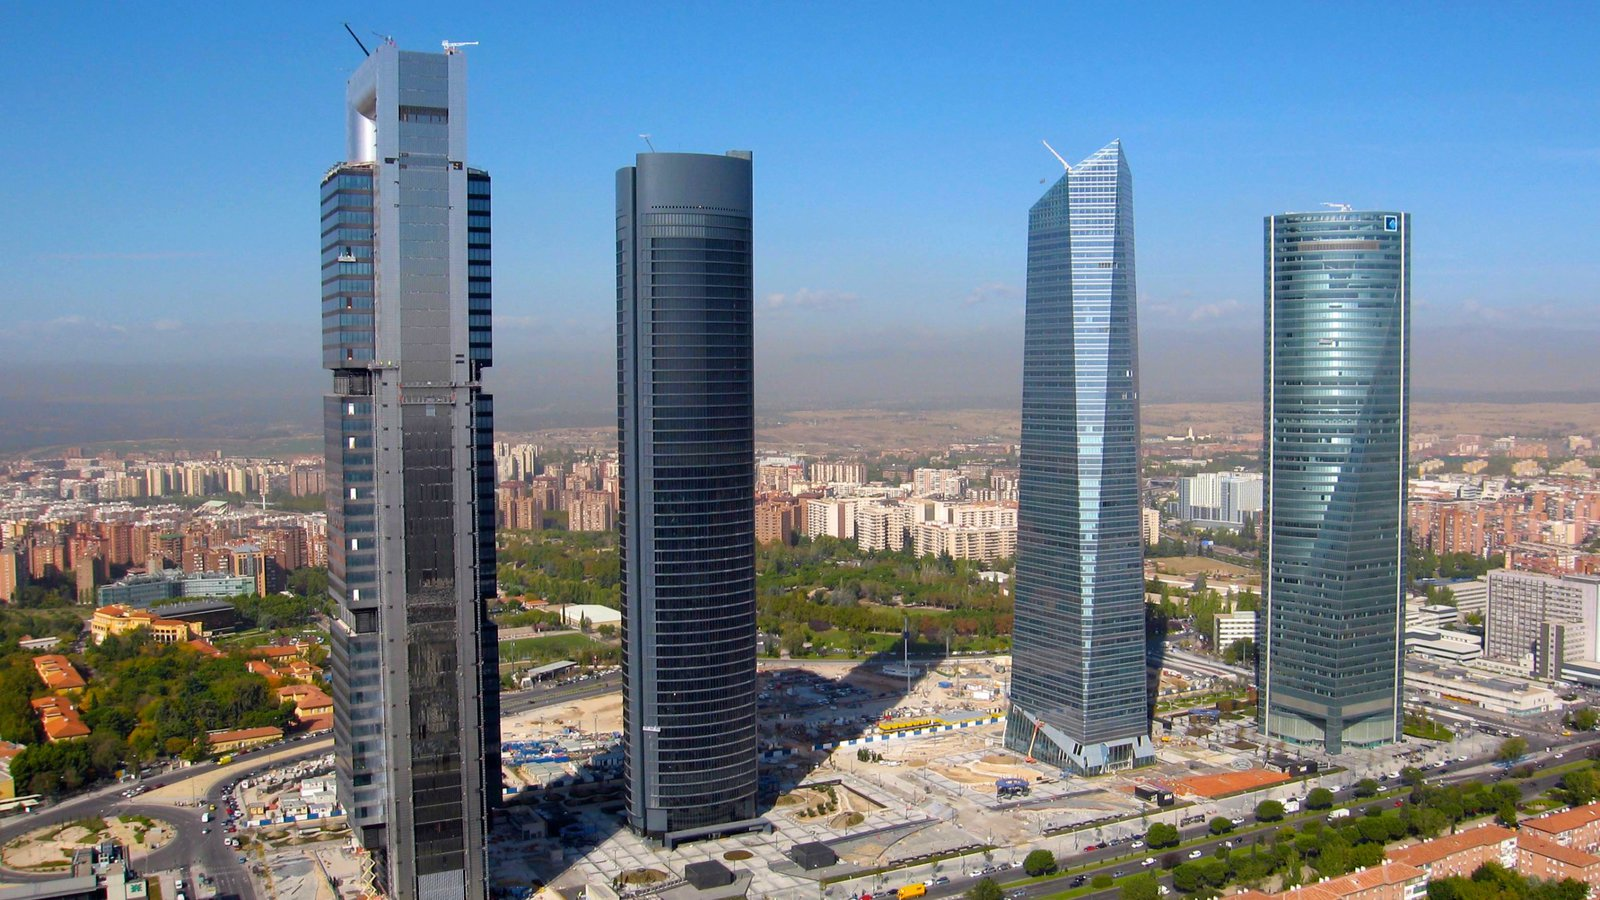 Modern Architecture City modern architecture pictures: view images of madrid